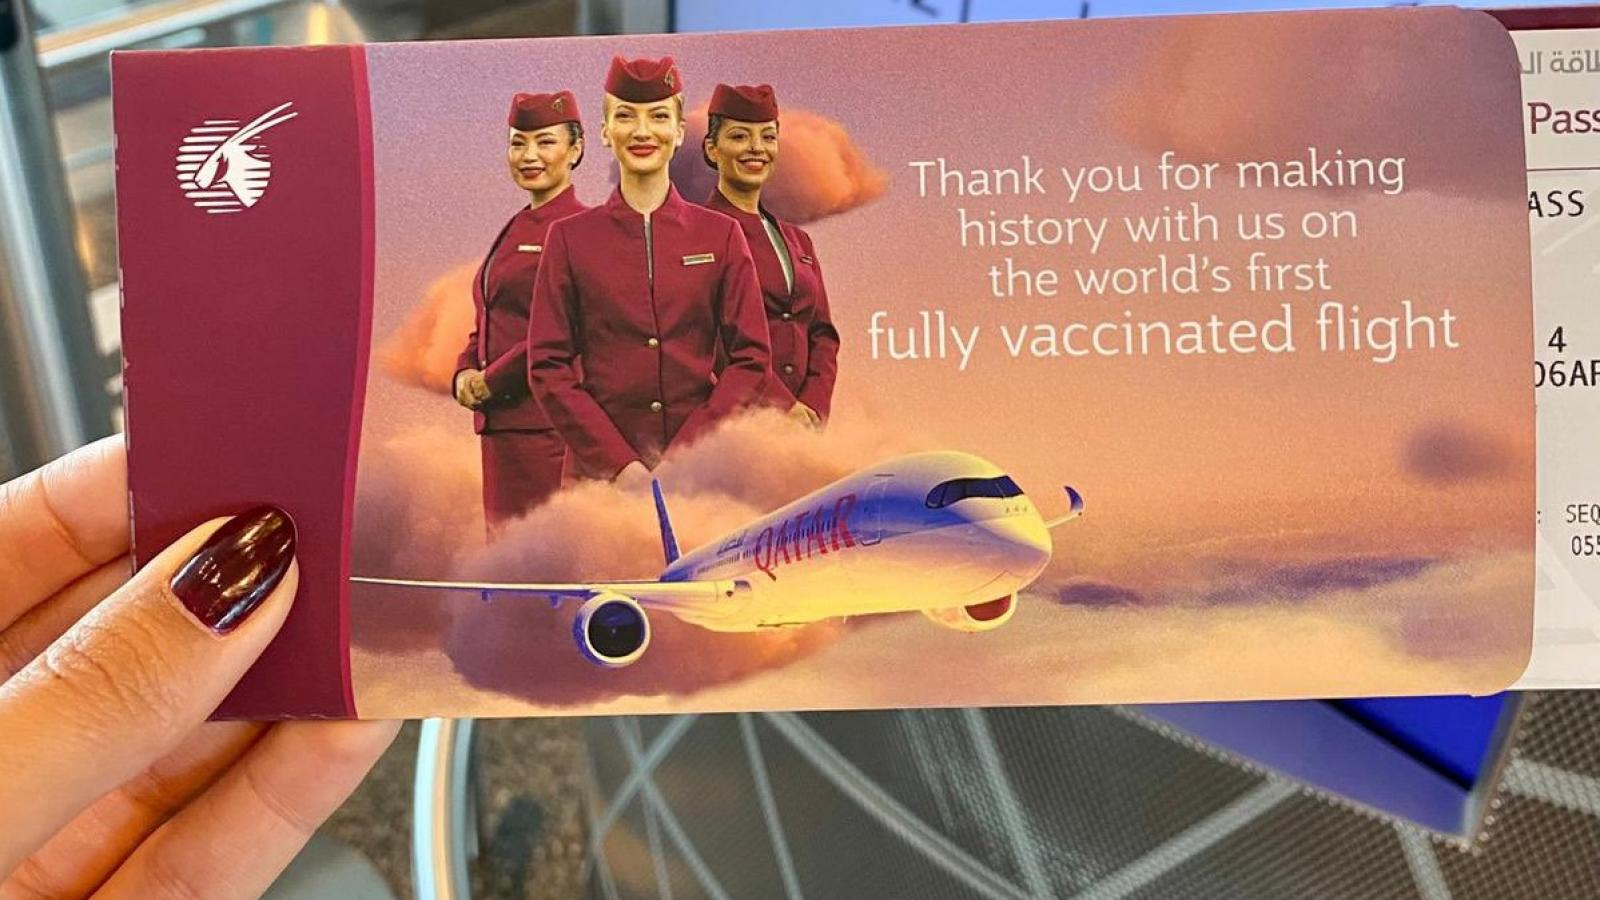 Qatar Airways operated the world's first fully COVID-19 vaccinated flight